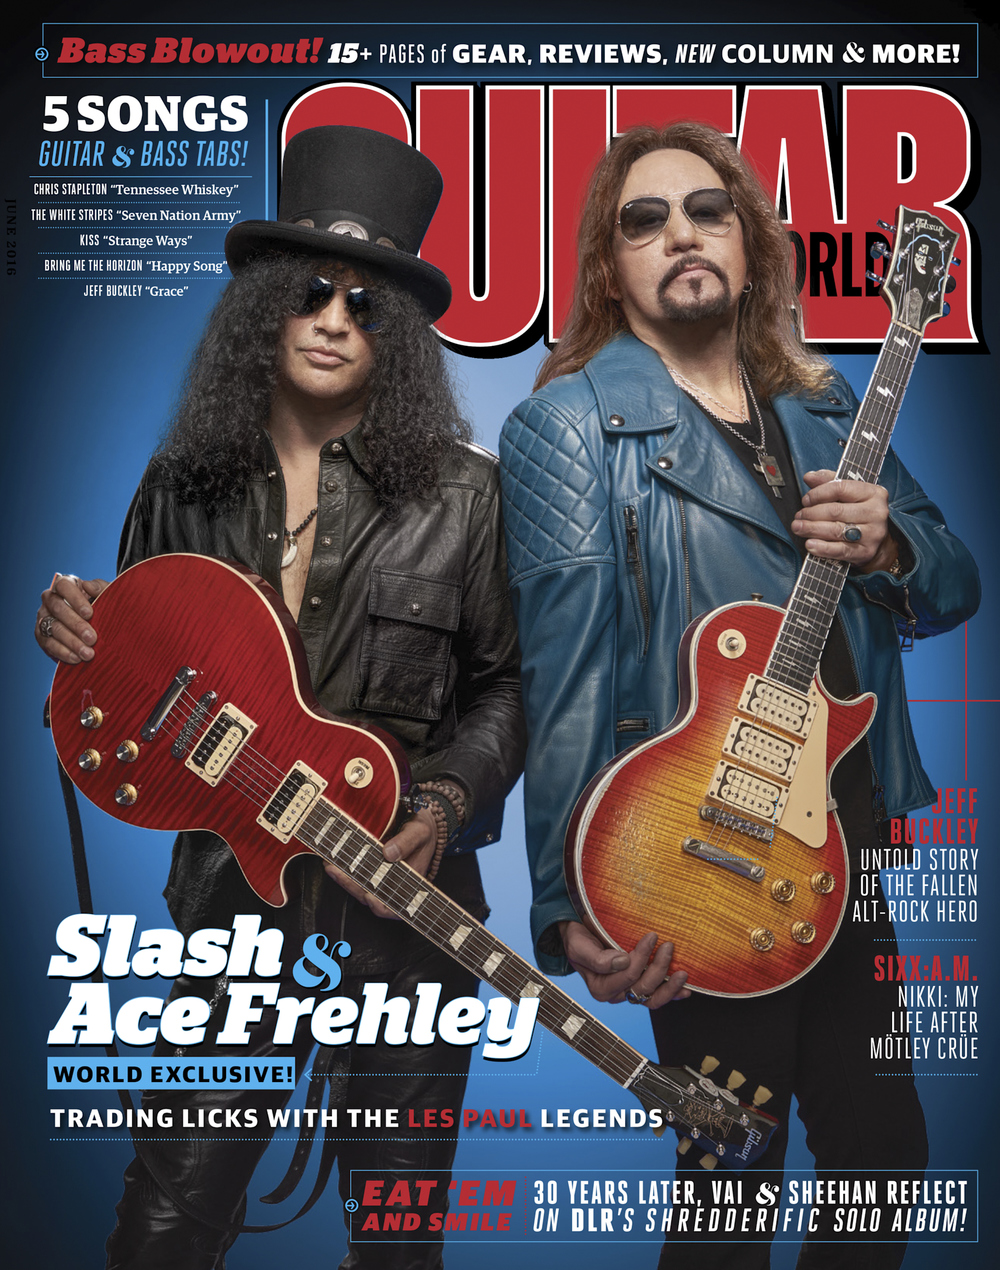 Guitar World, June 2016 featuring Slash and Ace Frehley